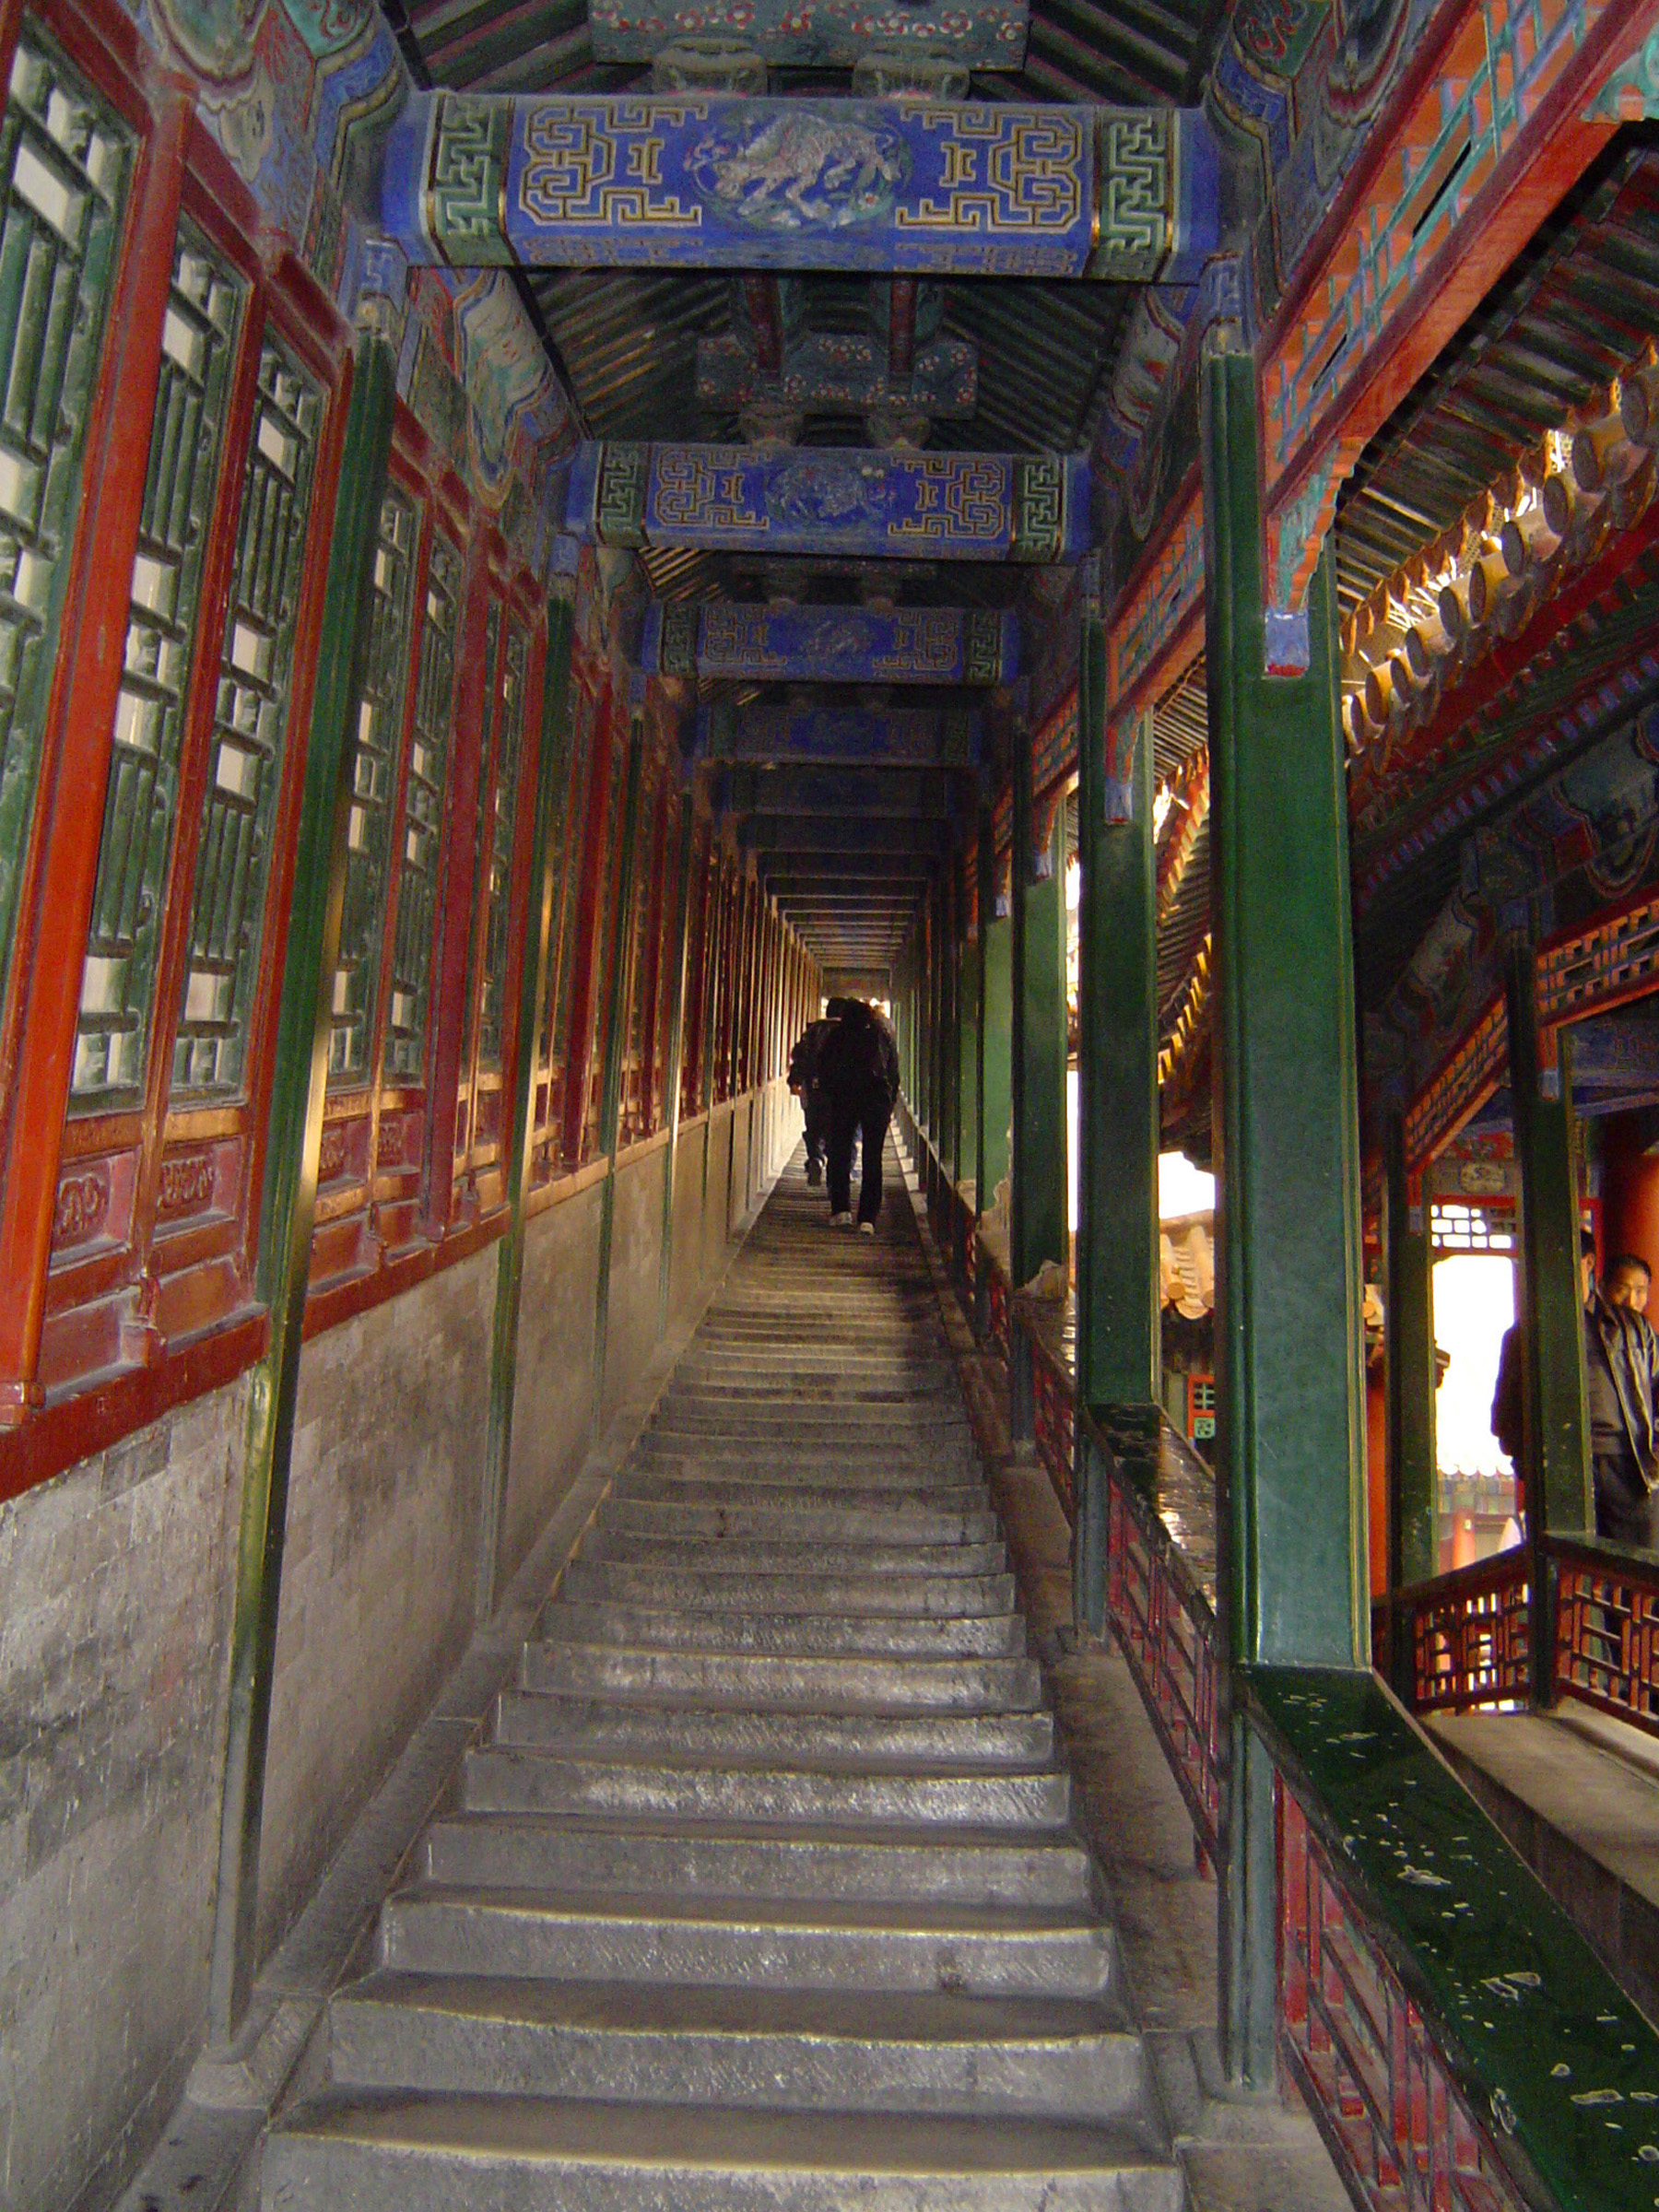 Walkway with Decorations at a Temple in China